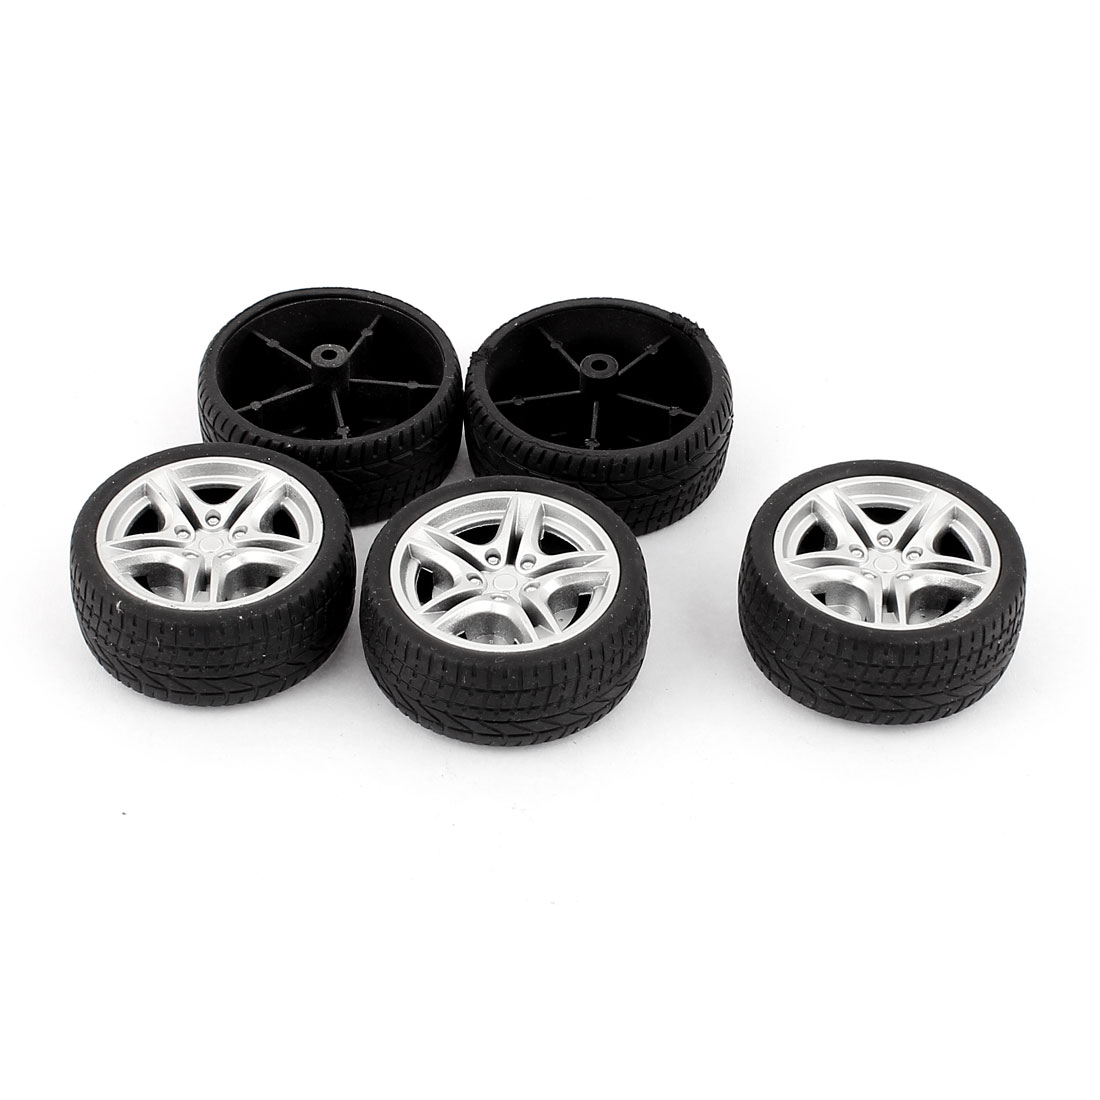 5 Pcs RC Toy Car Robot Vehicle Rubber Cover Wheel DIY 48mm Dia Rims Silver Tone Black